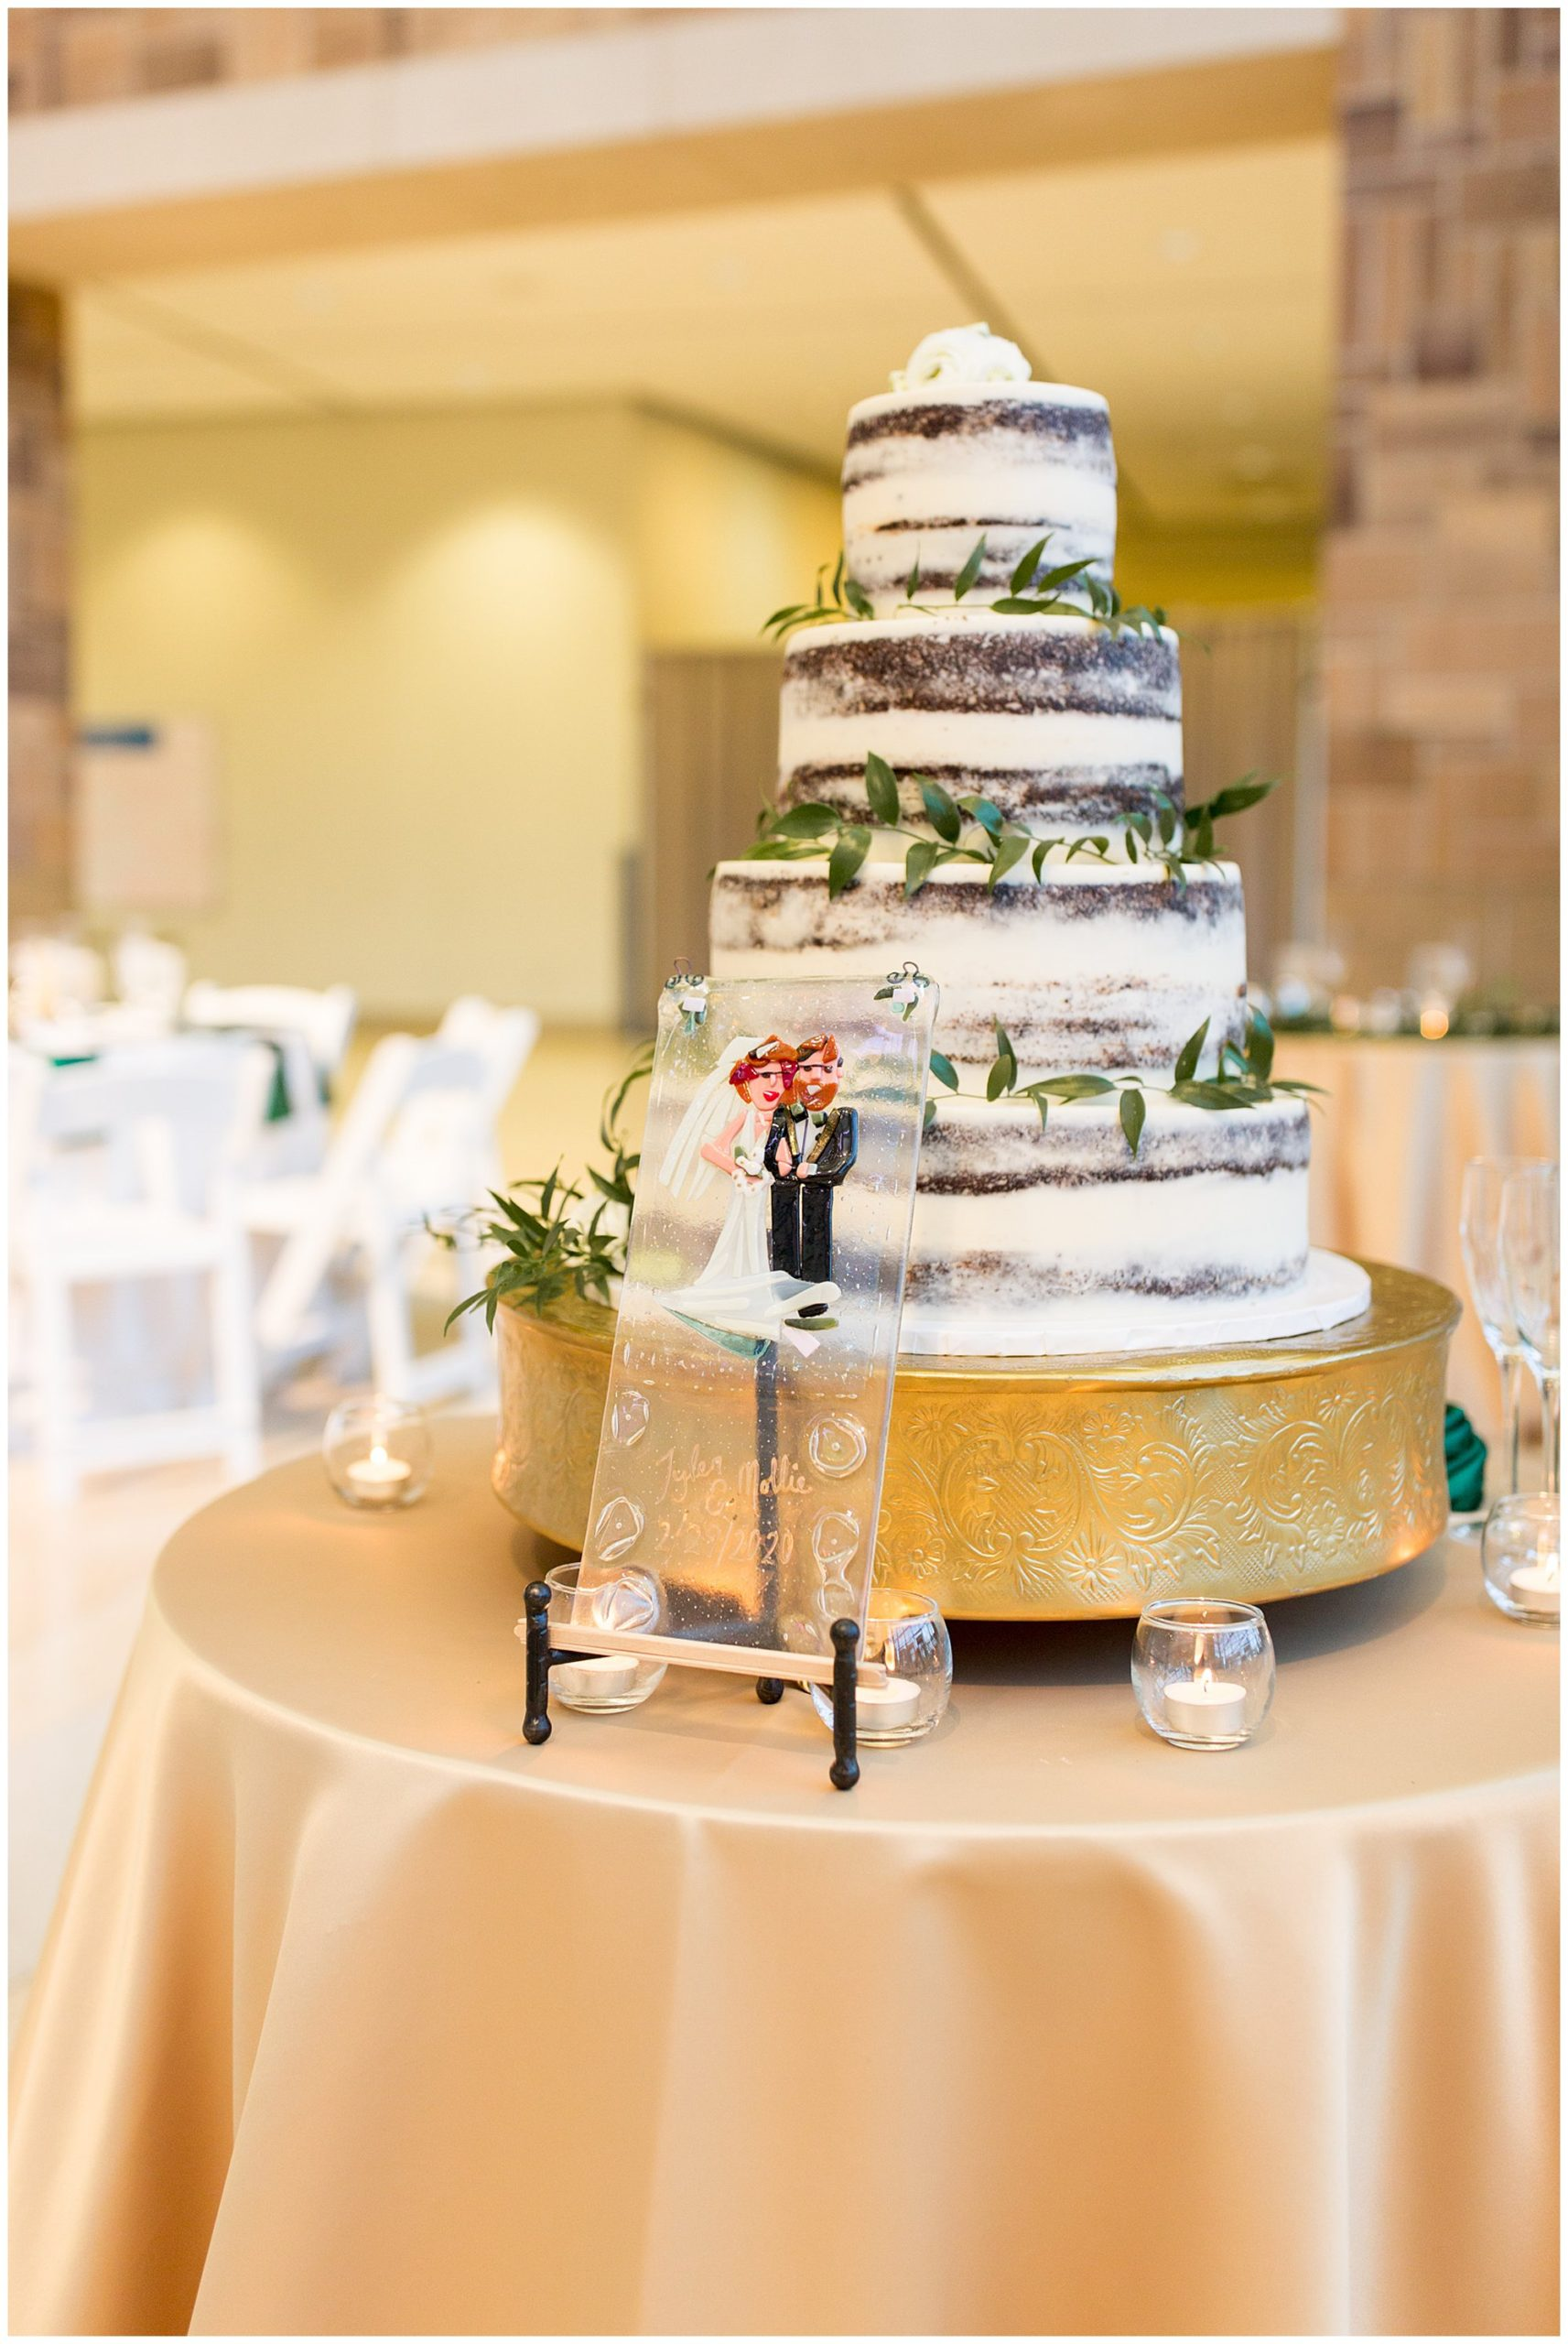 wedding cake from Kahn's Catering at Indiana State Musuem